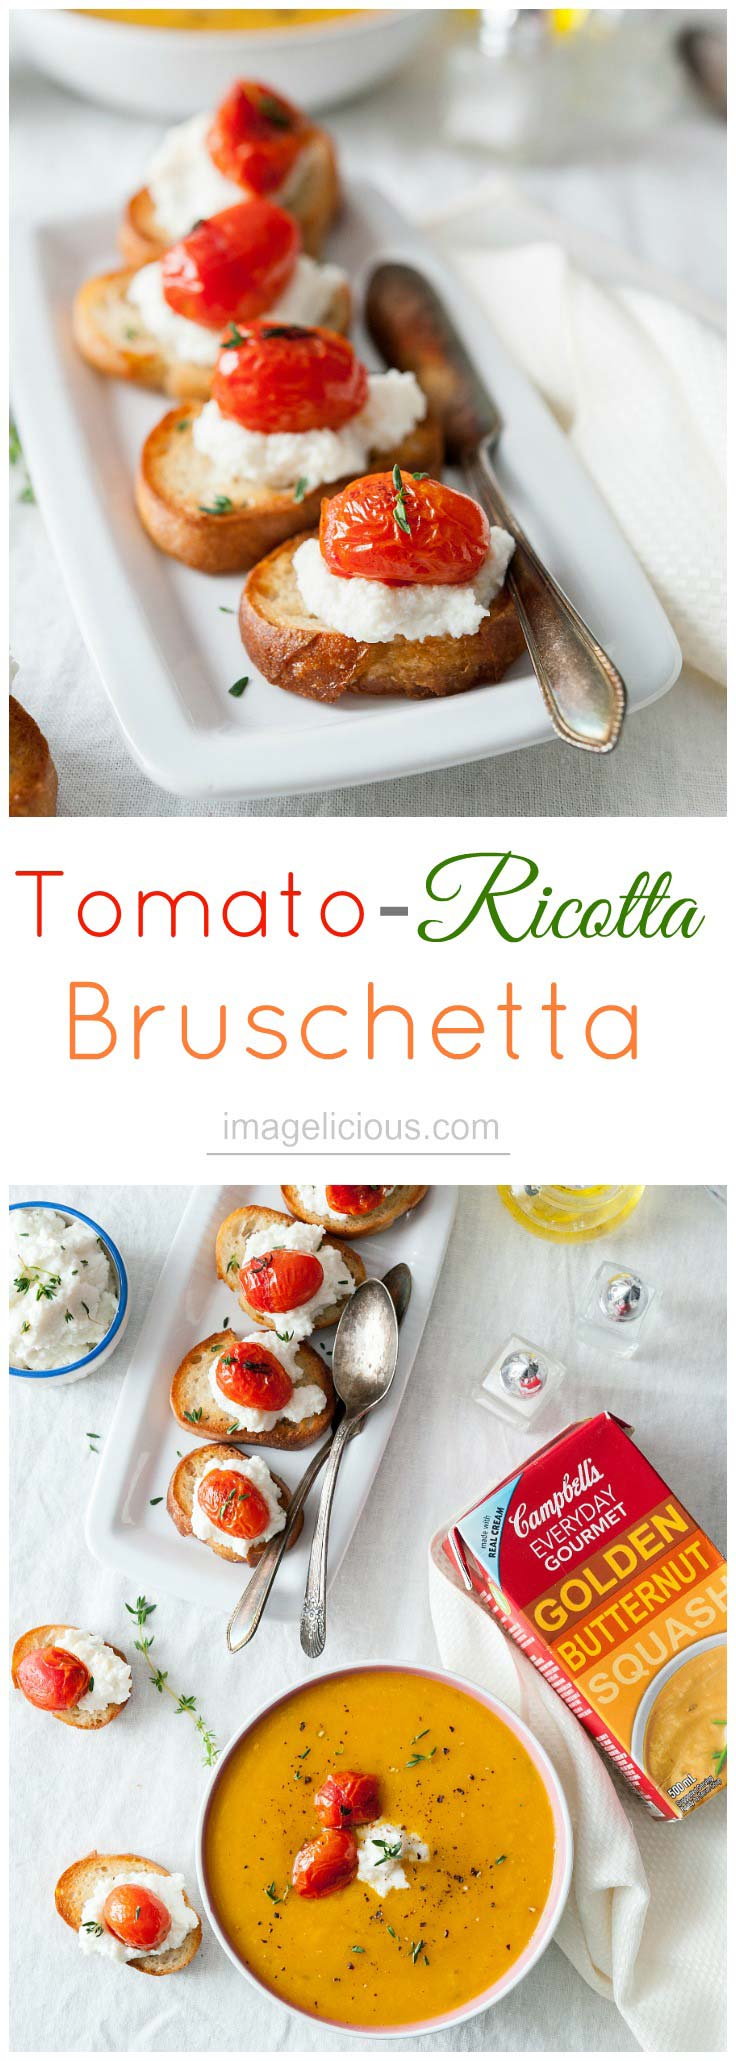 Tomato-Ricotta Bruschetta - crusty baguette topped with creamy ricotta and tangy tomatoes perfect accompaniment to Campbell's Everyday Gourmet Golden Butternut Squash Soup | Imagelicious #sponsored